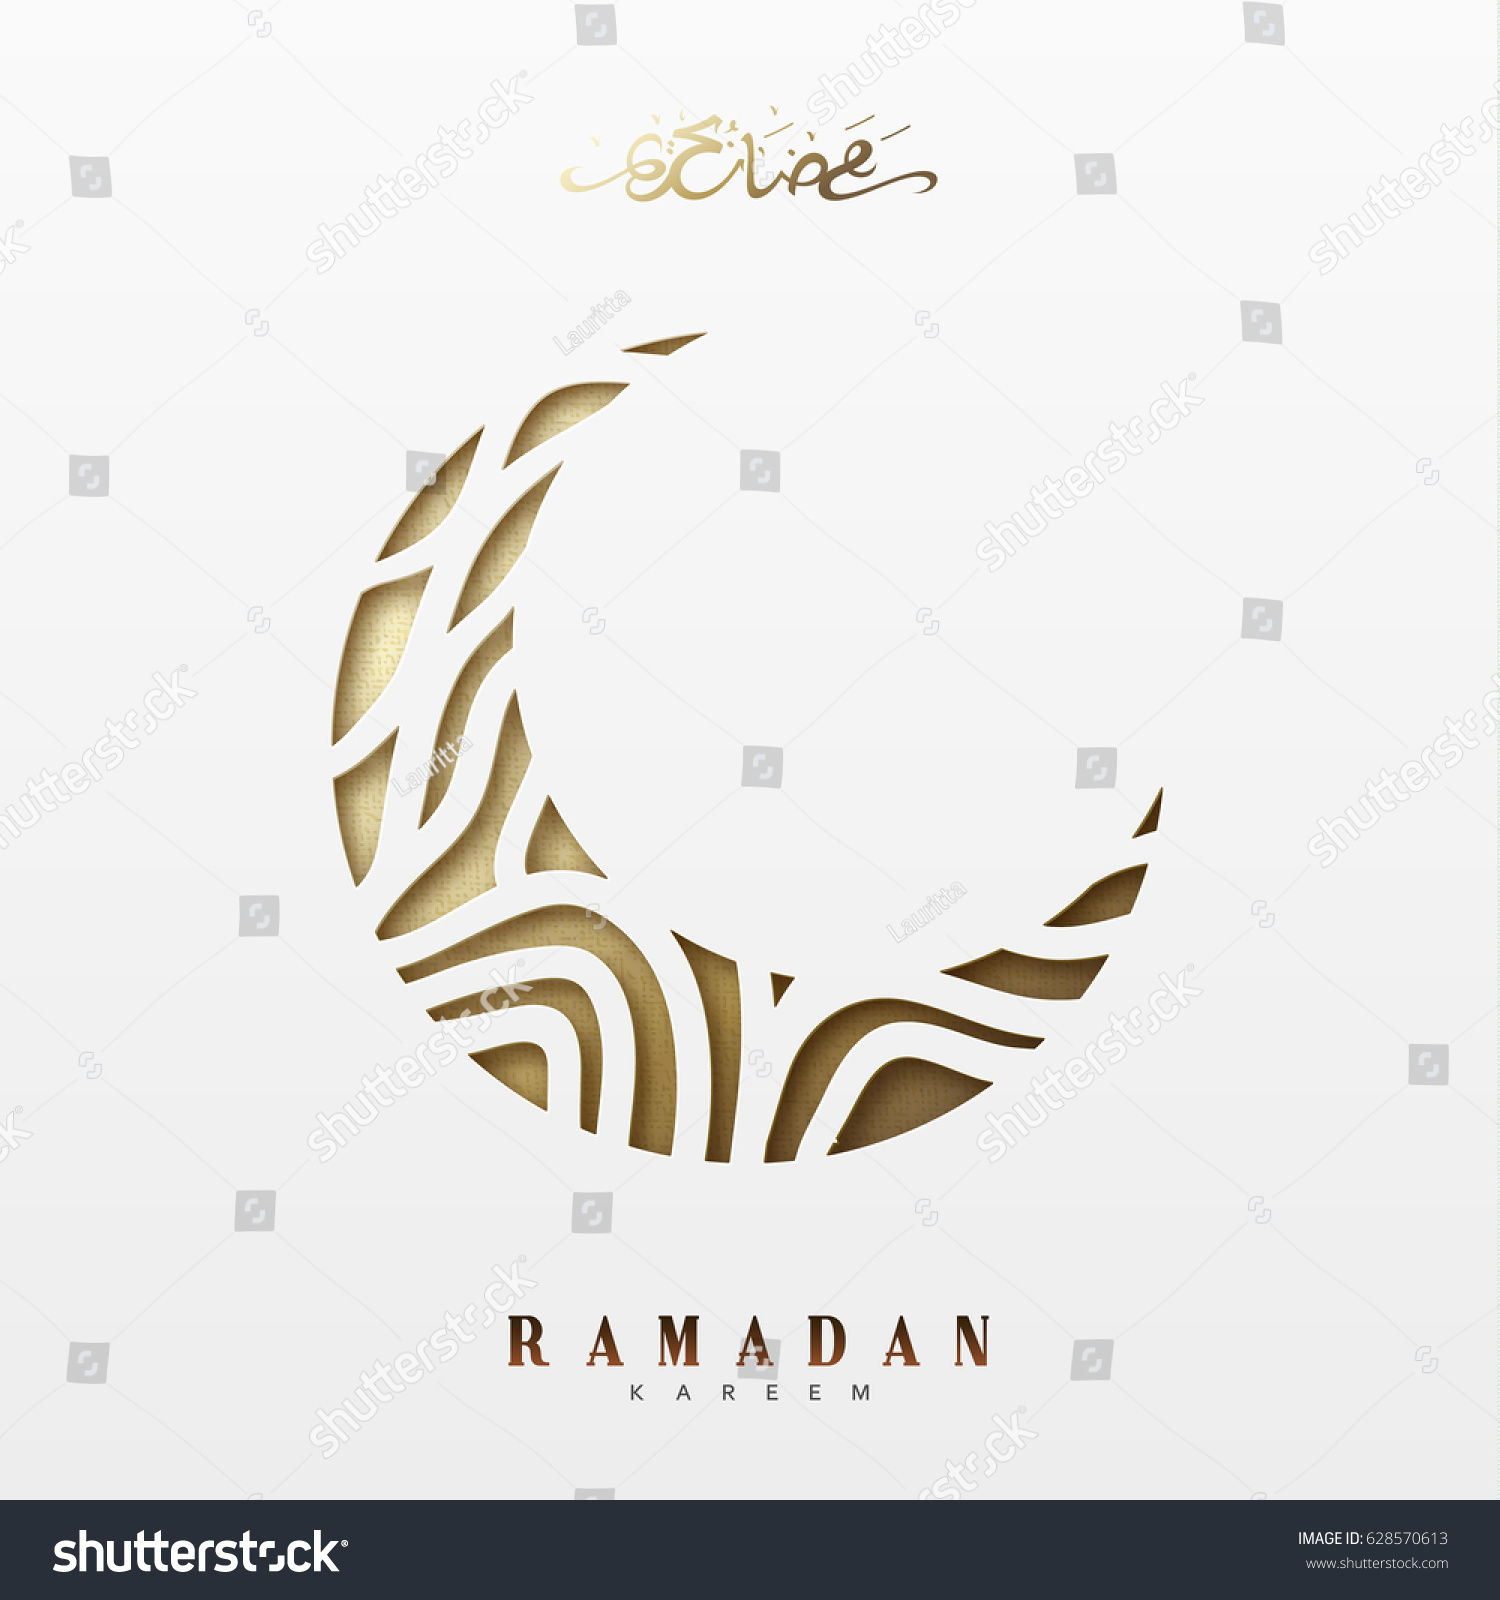 Month ramadan greeting card arabic calligraphy stock vector month ramadan greeting card with arabic calligraphy ramadan kareem islamic background half a month m4hsunfo